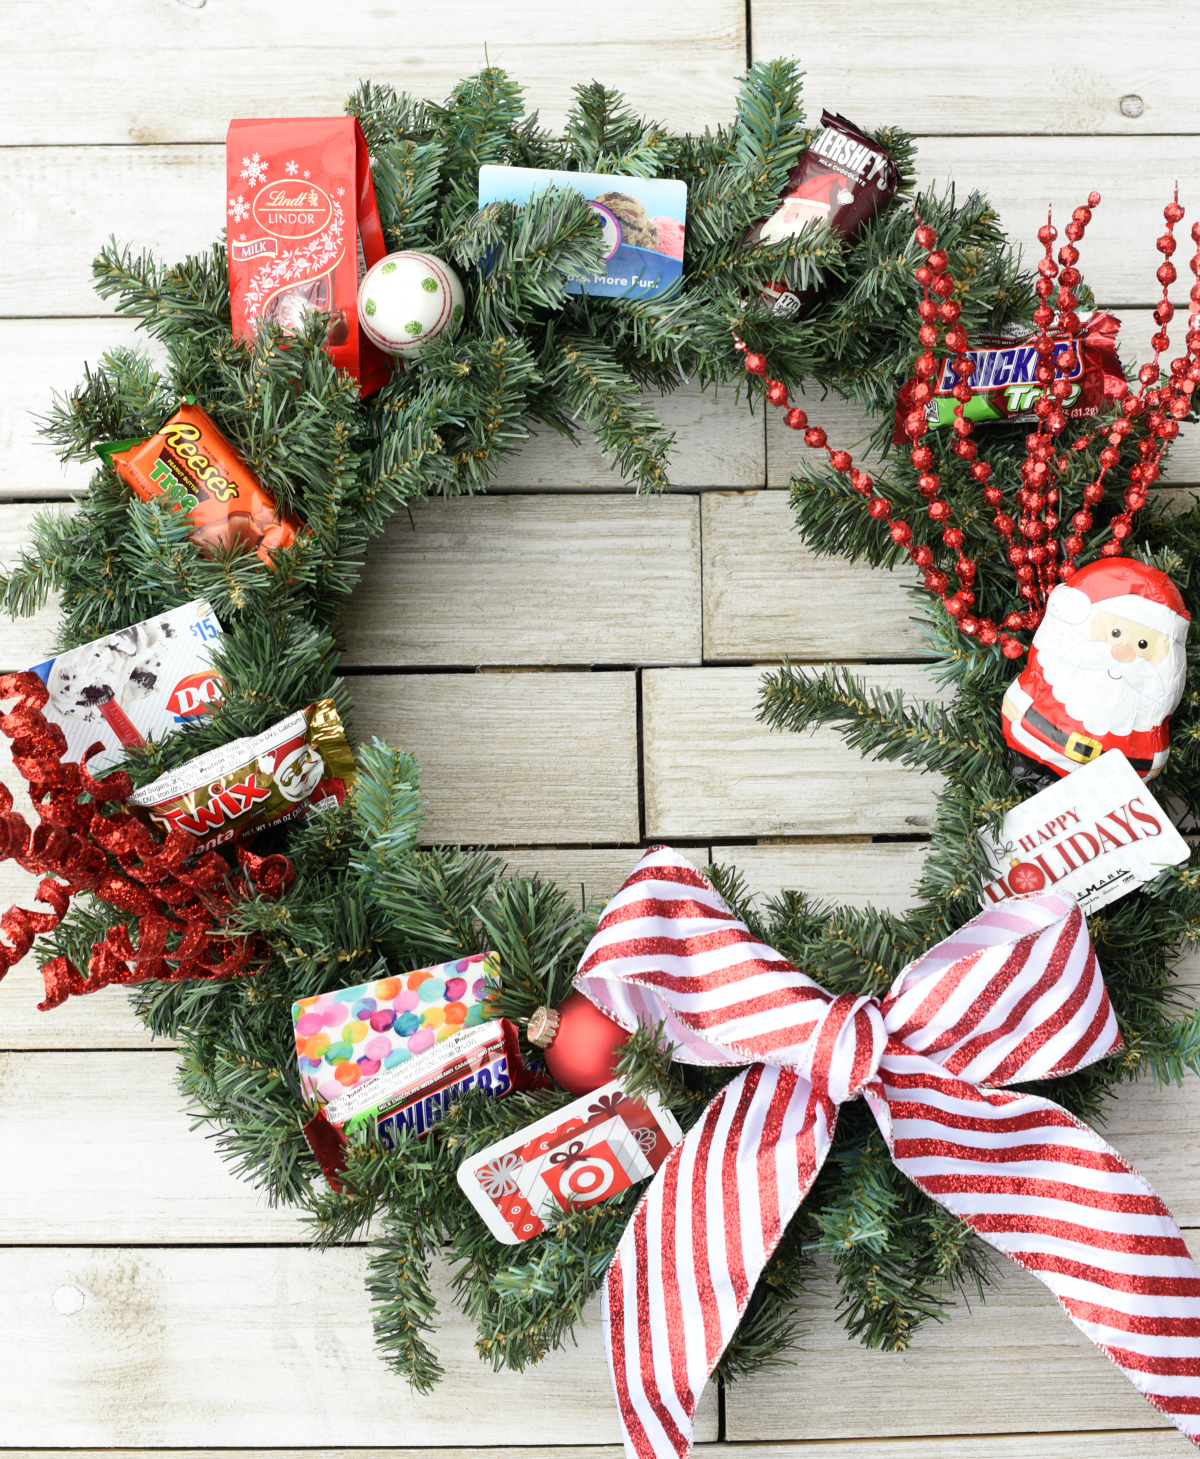 Creative Christmas Gift: Gift Card Wreath – Fun-Squared